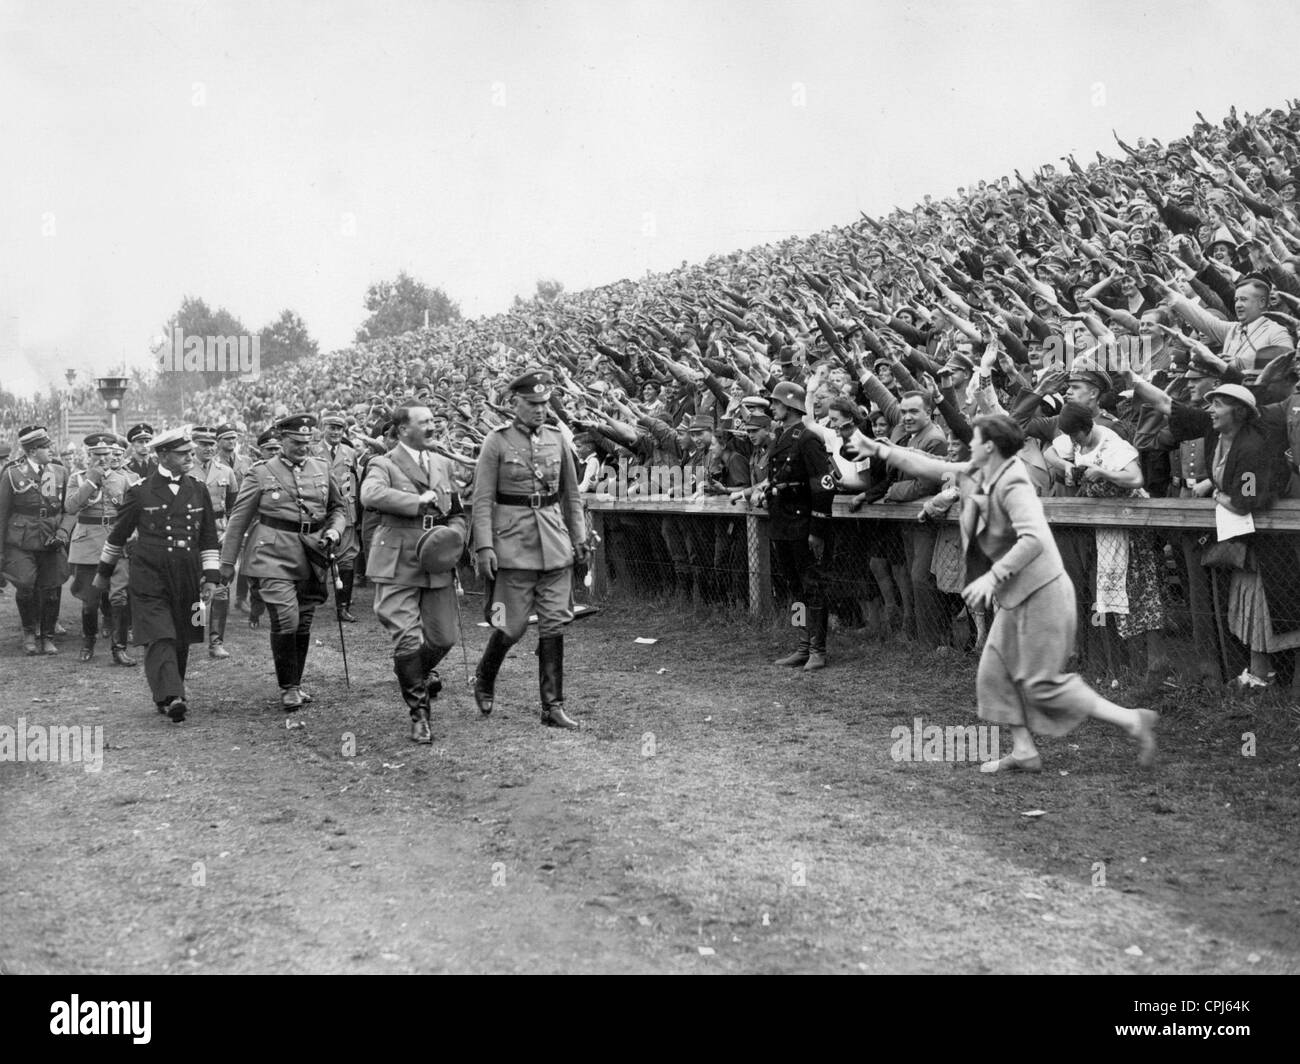 Image result for hitler rally photo